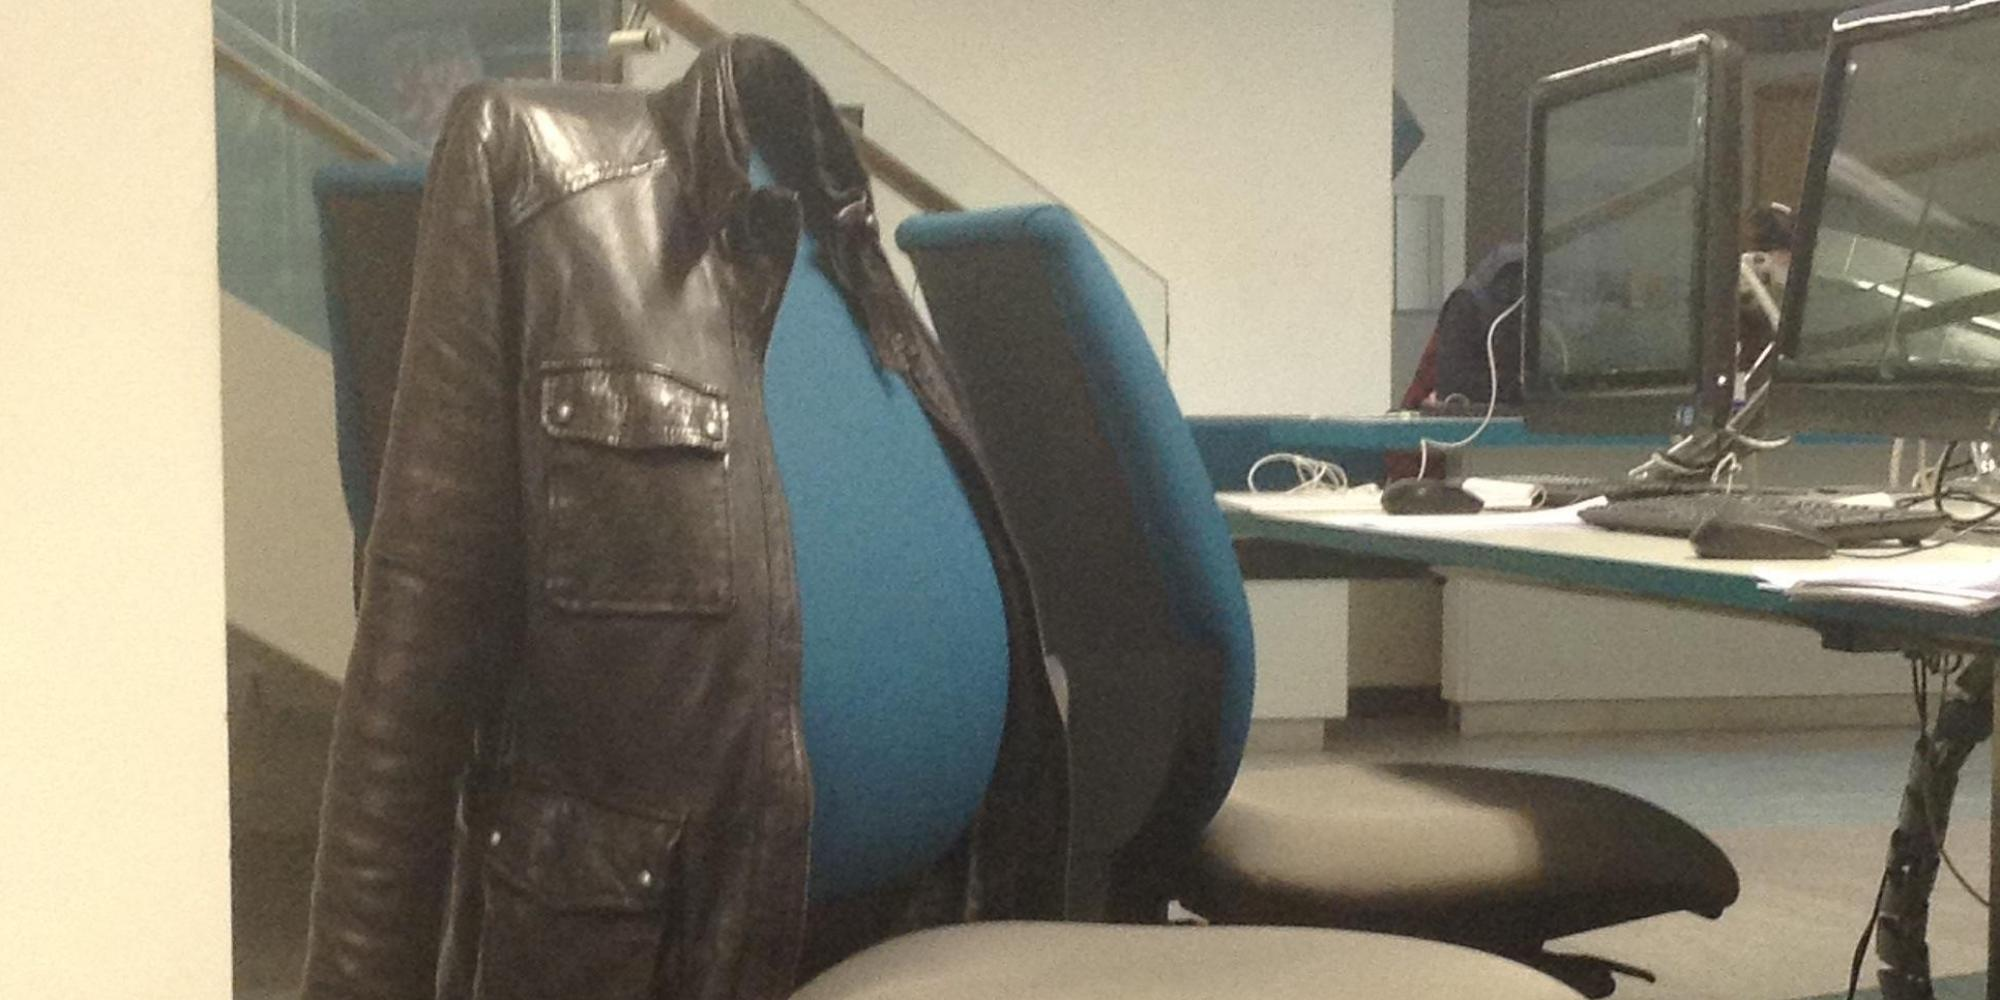 This Chair Looks Like Jeremy Clarkson PICTURE HuffPost UK